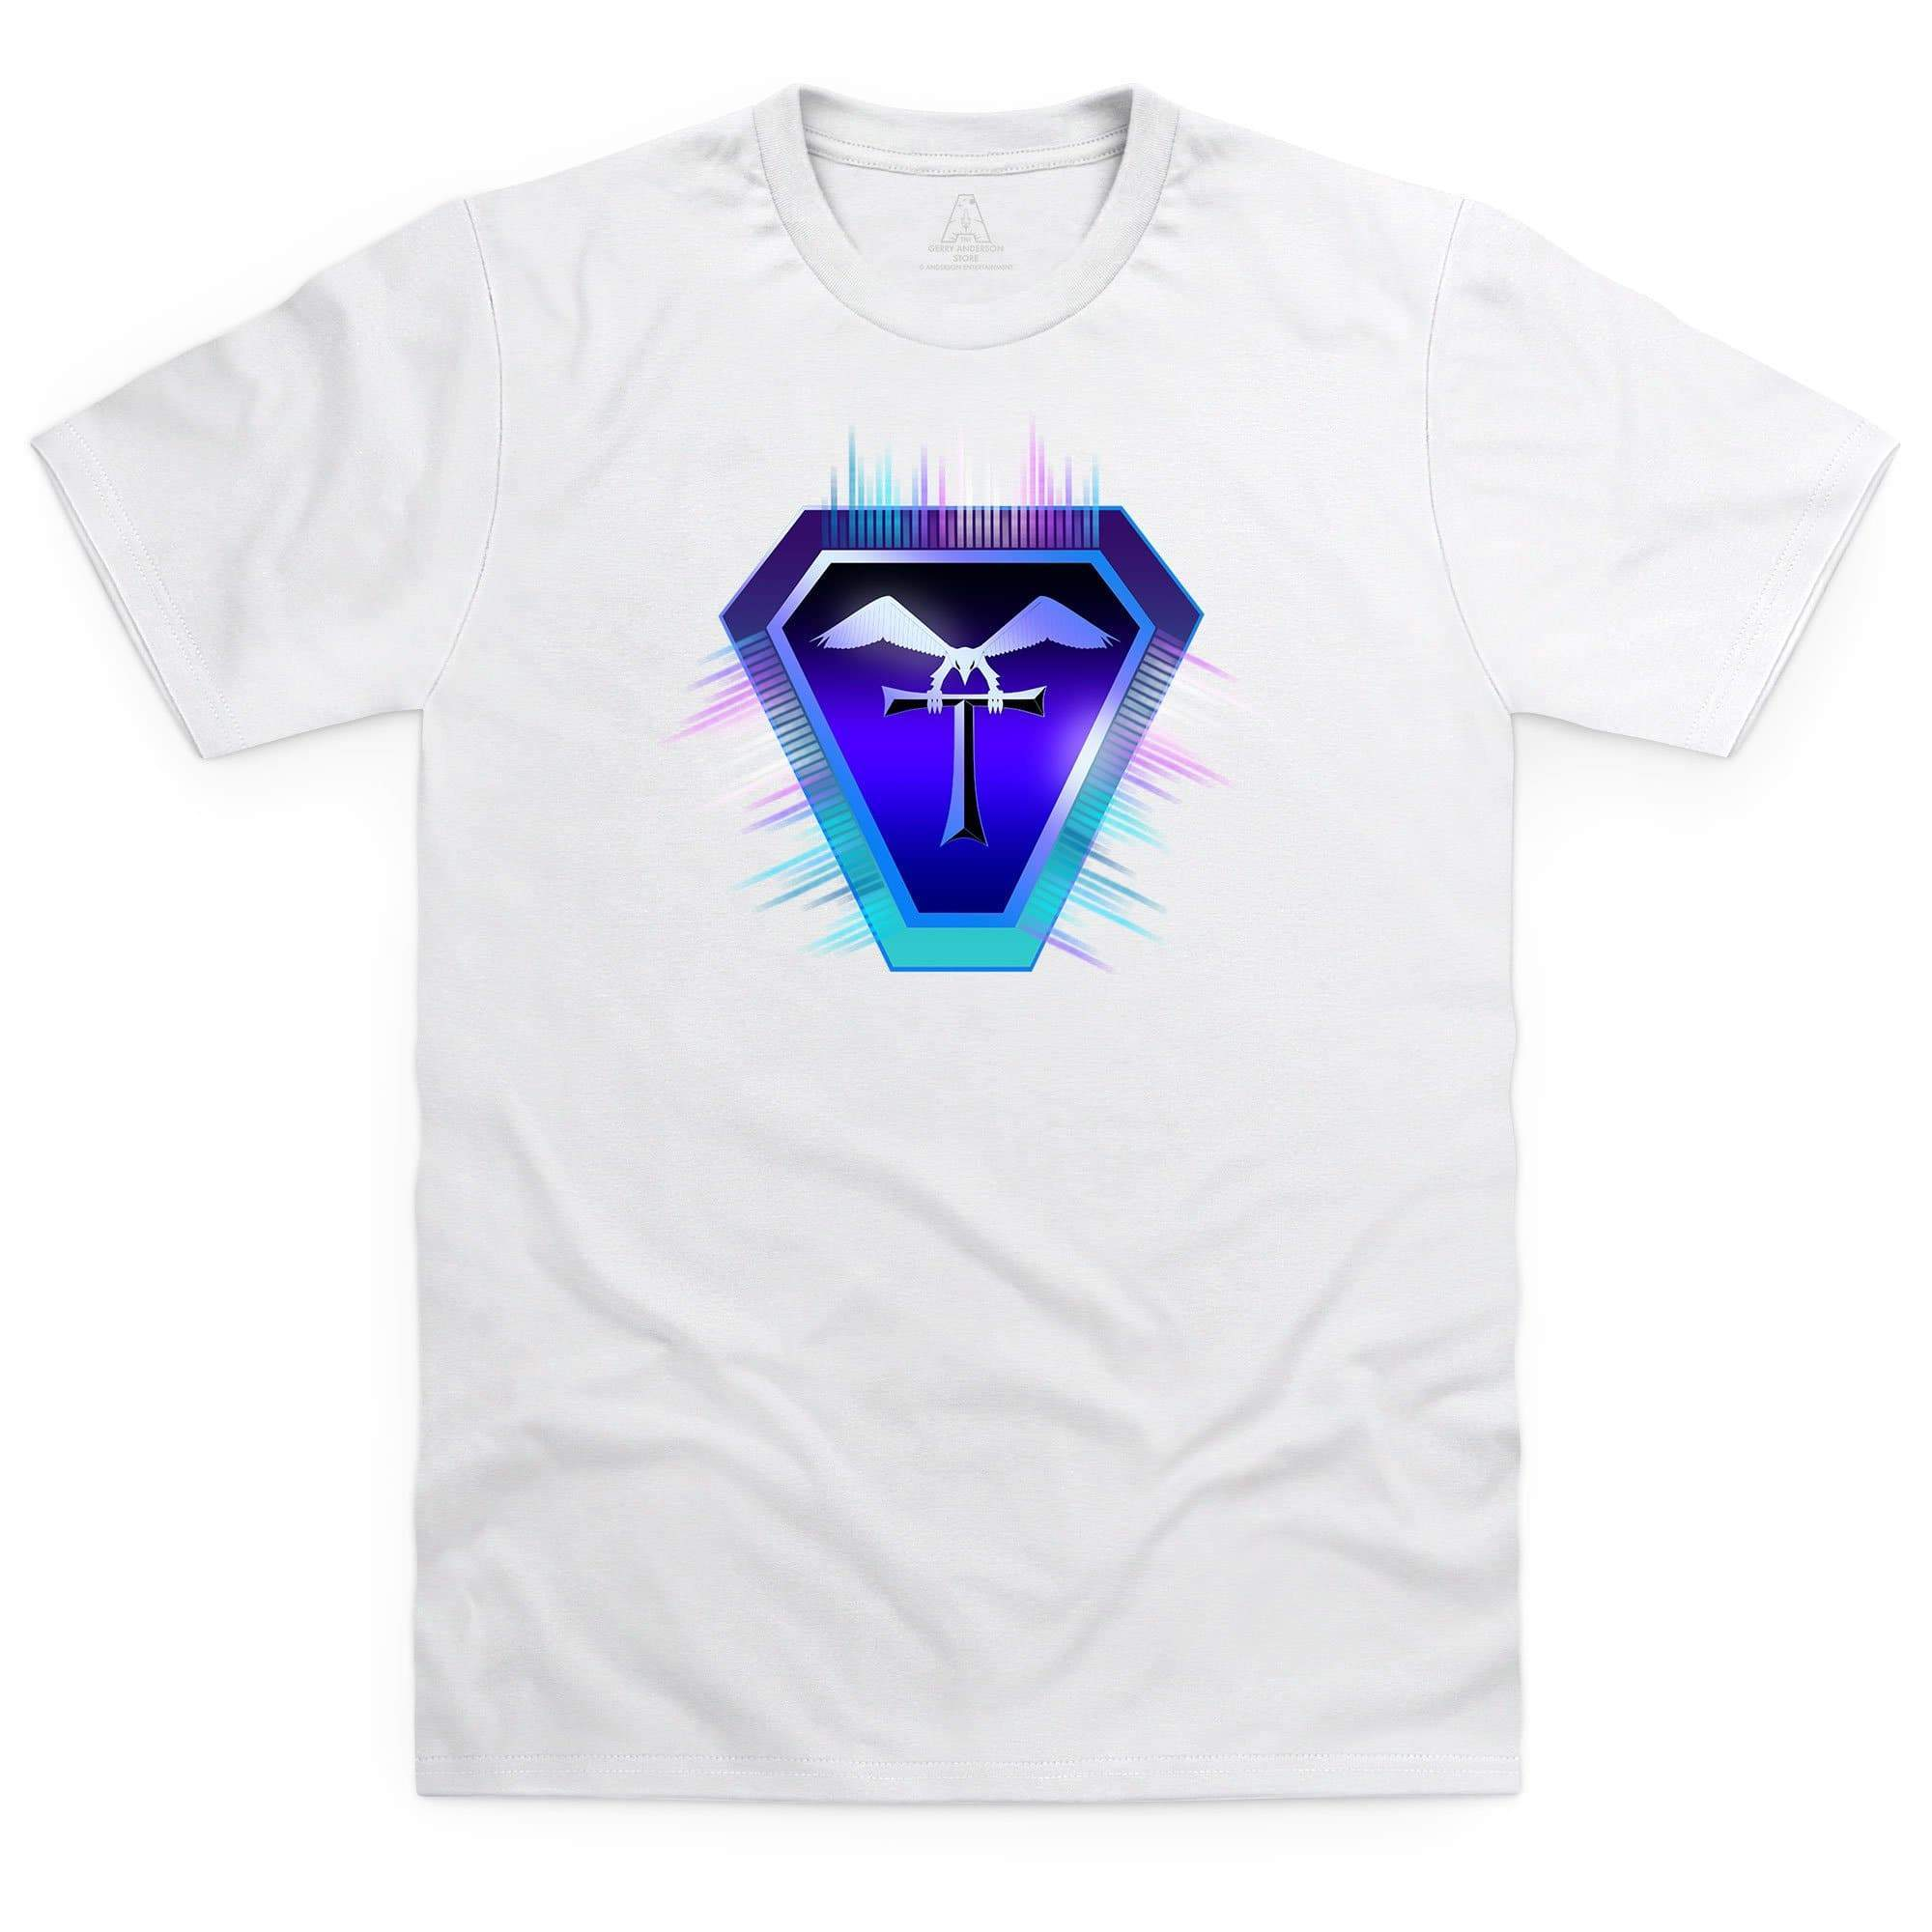 Terrahawks Neon Logo Kid's White T-Shirt [Official & Exclusive] - The Gerry Anderson Store